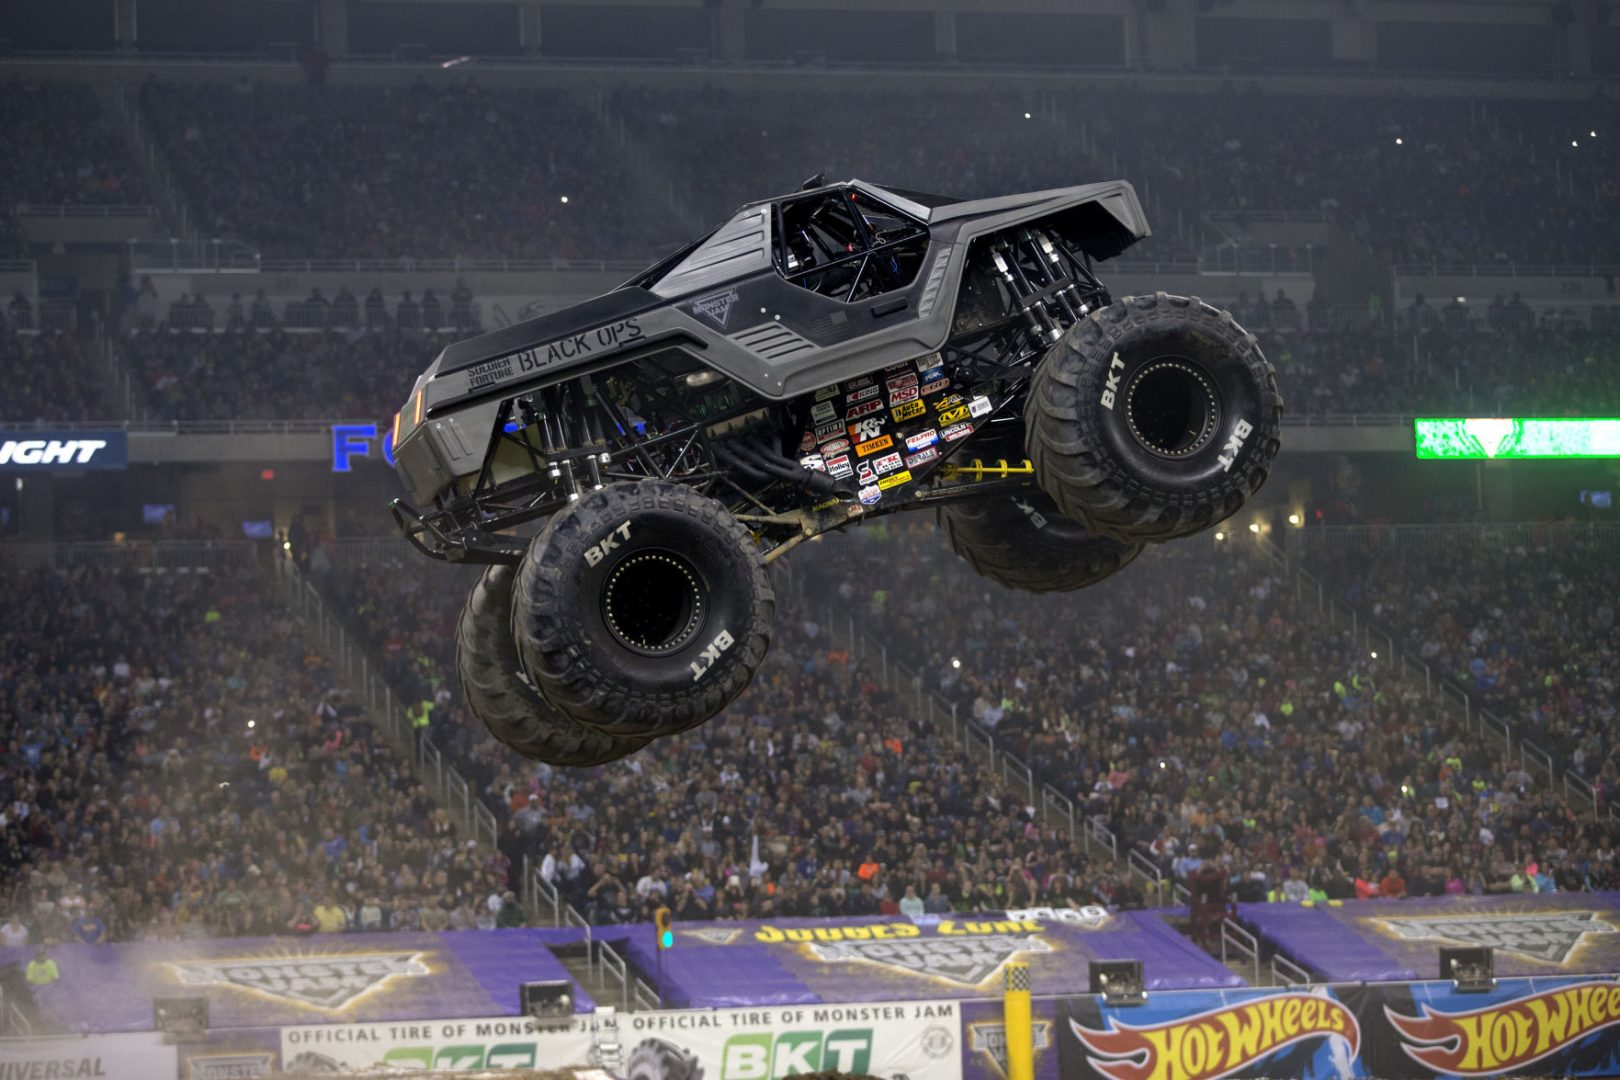 Monster Jam brings really big trucks and more to Salt Lake City this weekend